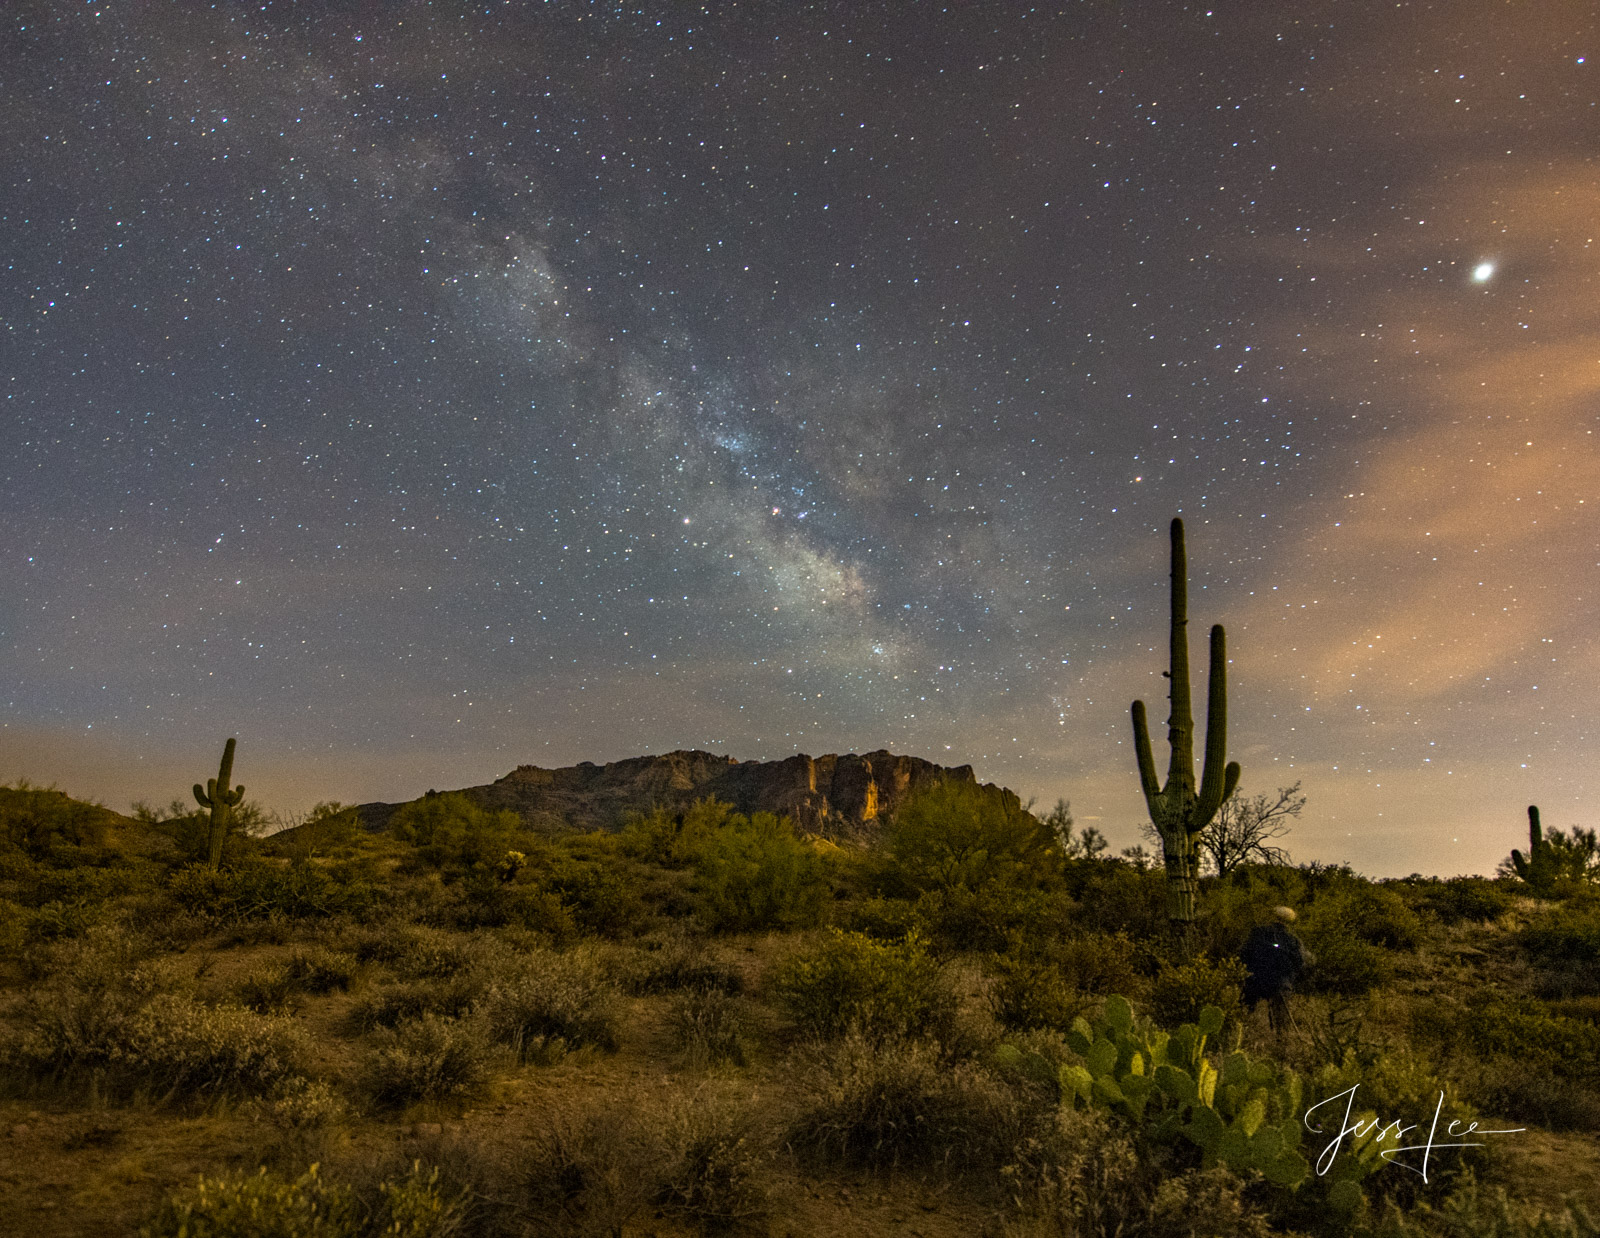 Limited Edition of 50 Exclusive high-resolution Museum Quality Fine Art Prints of the Night Sky at the Superstition Mountains...